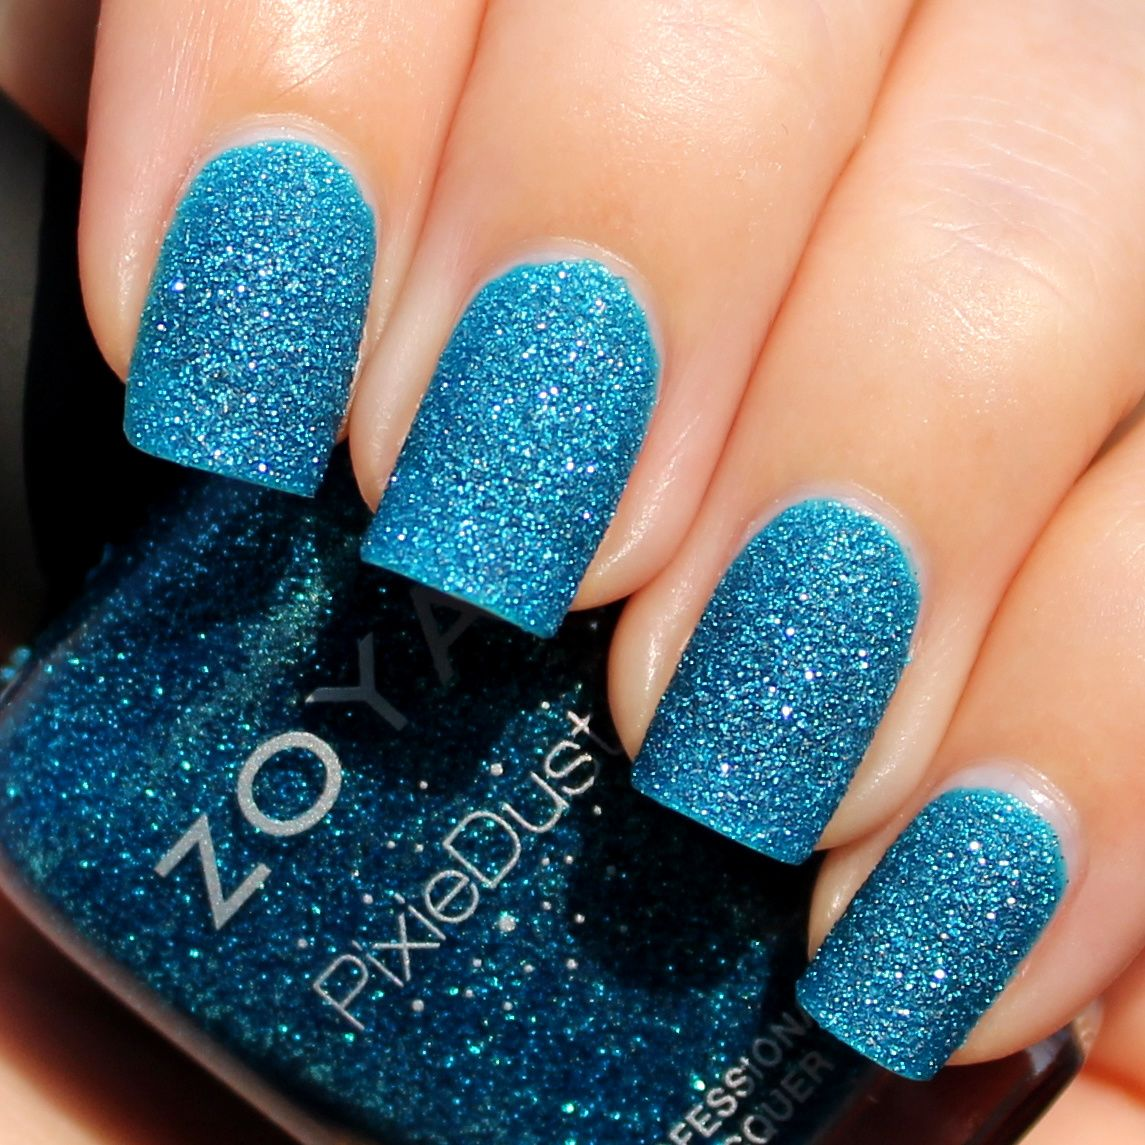 Revlon Quick dry base coat / Zoya Liberty